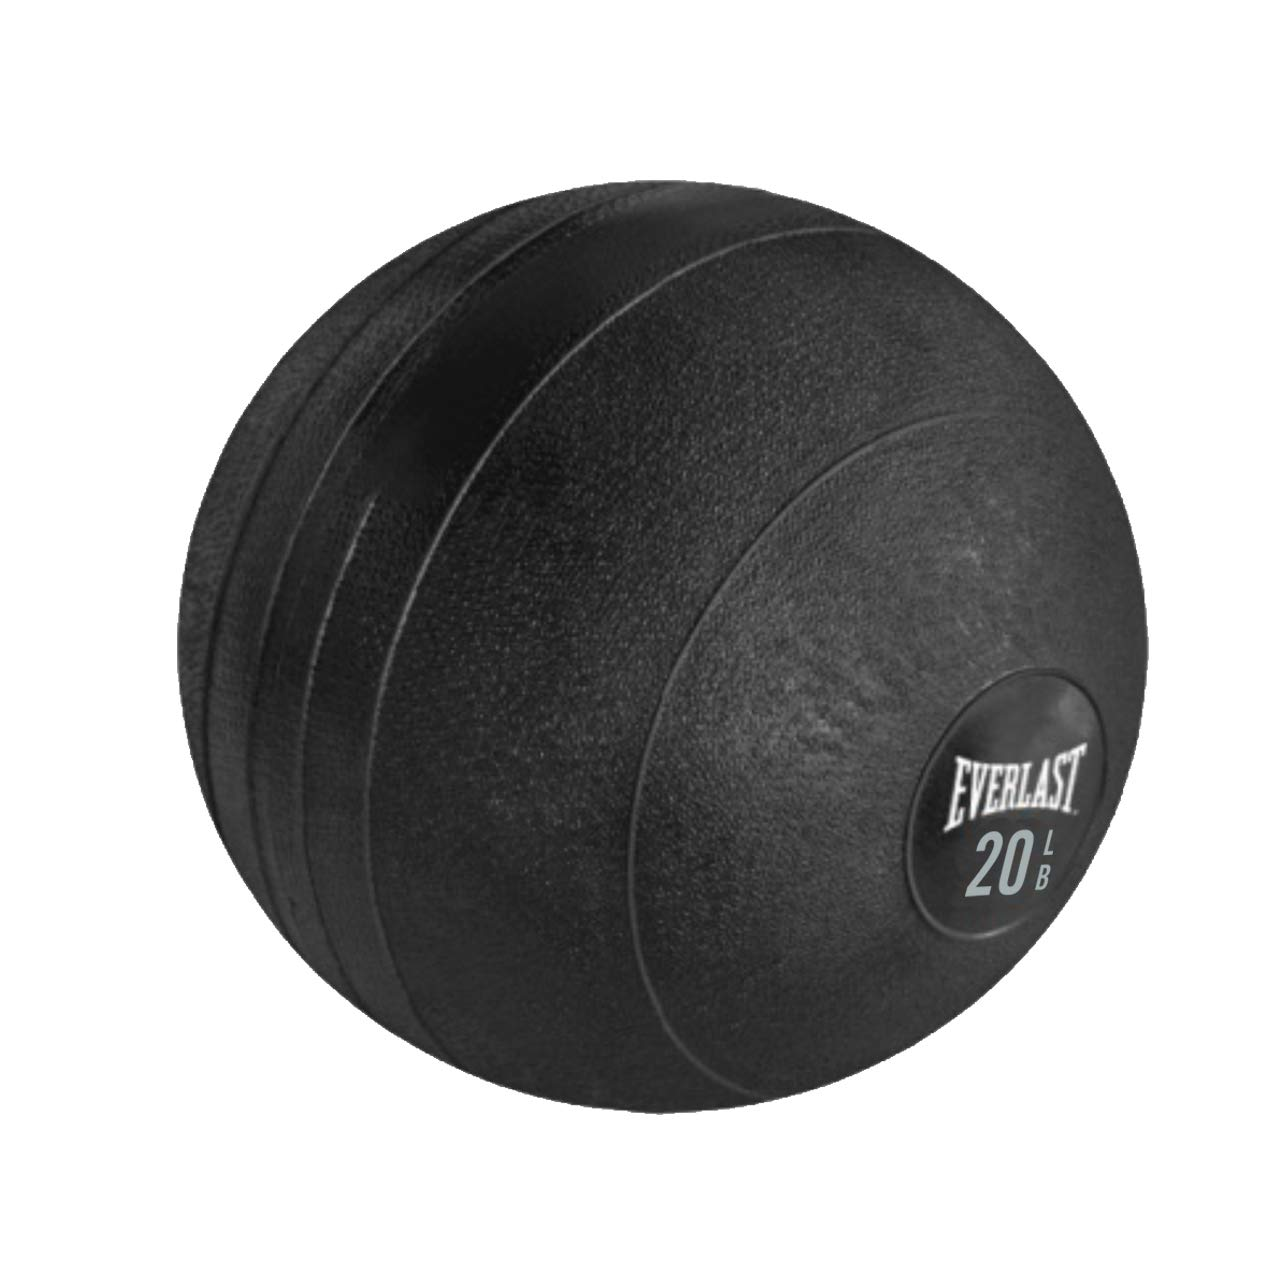 Everlast 20lb Flex Slam Ball Flex Slam Ball